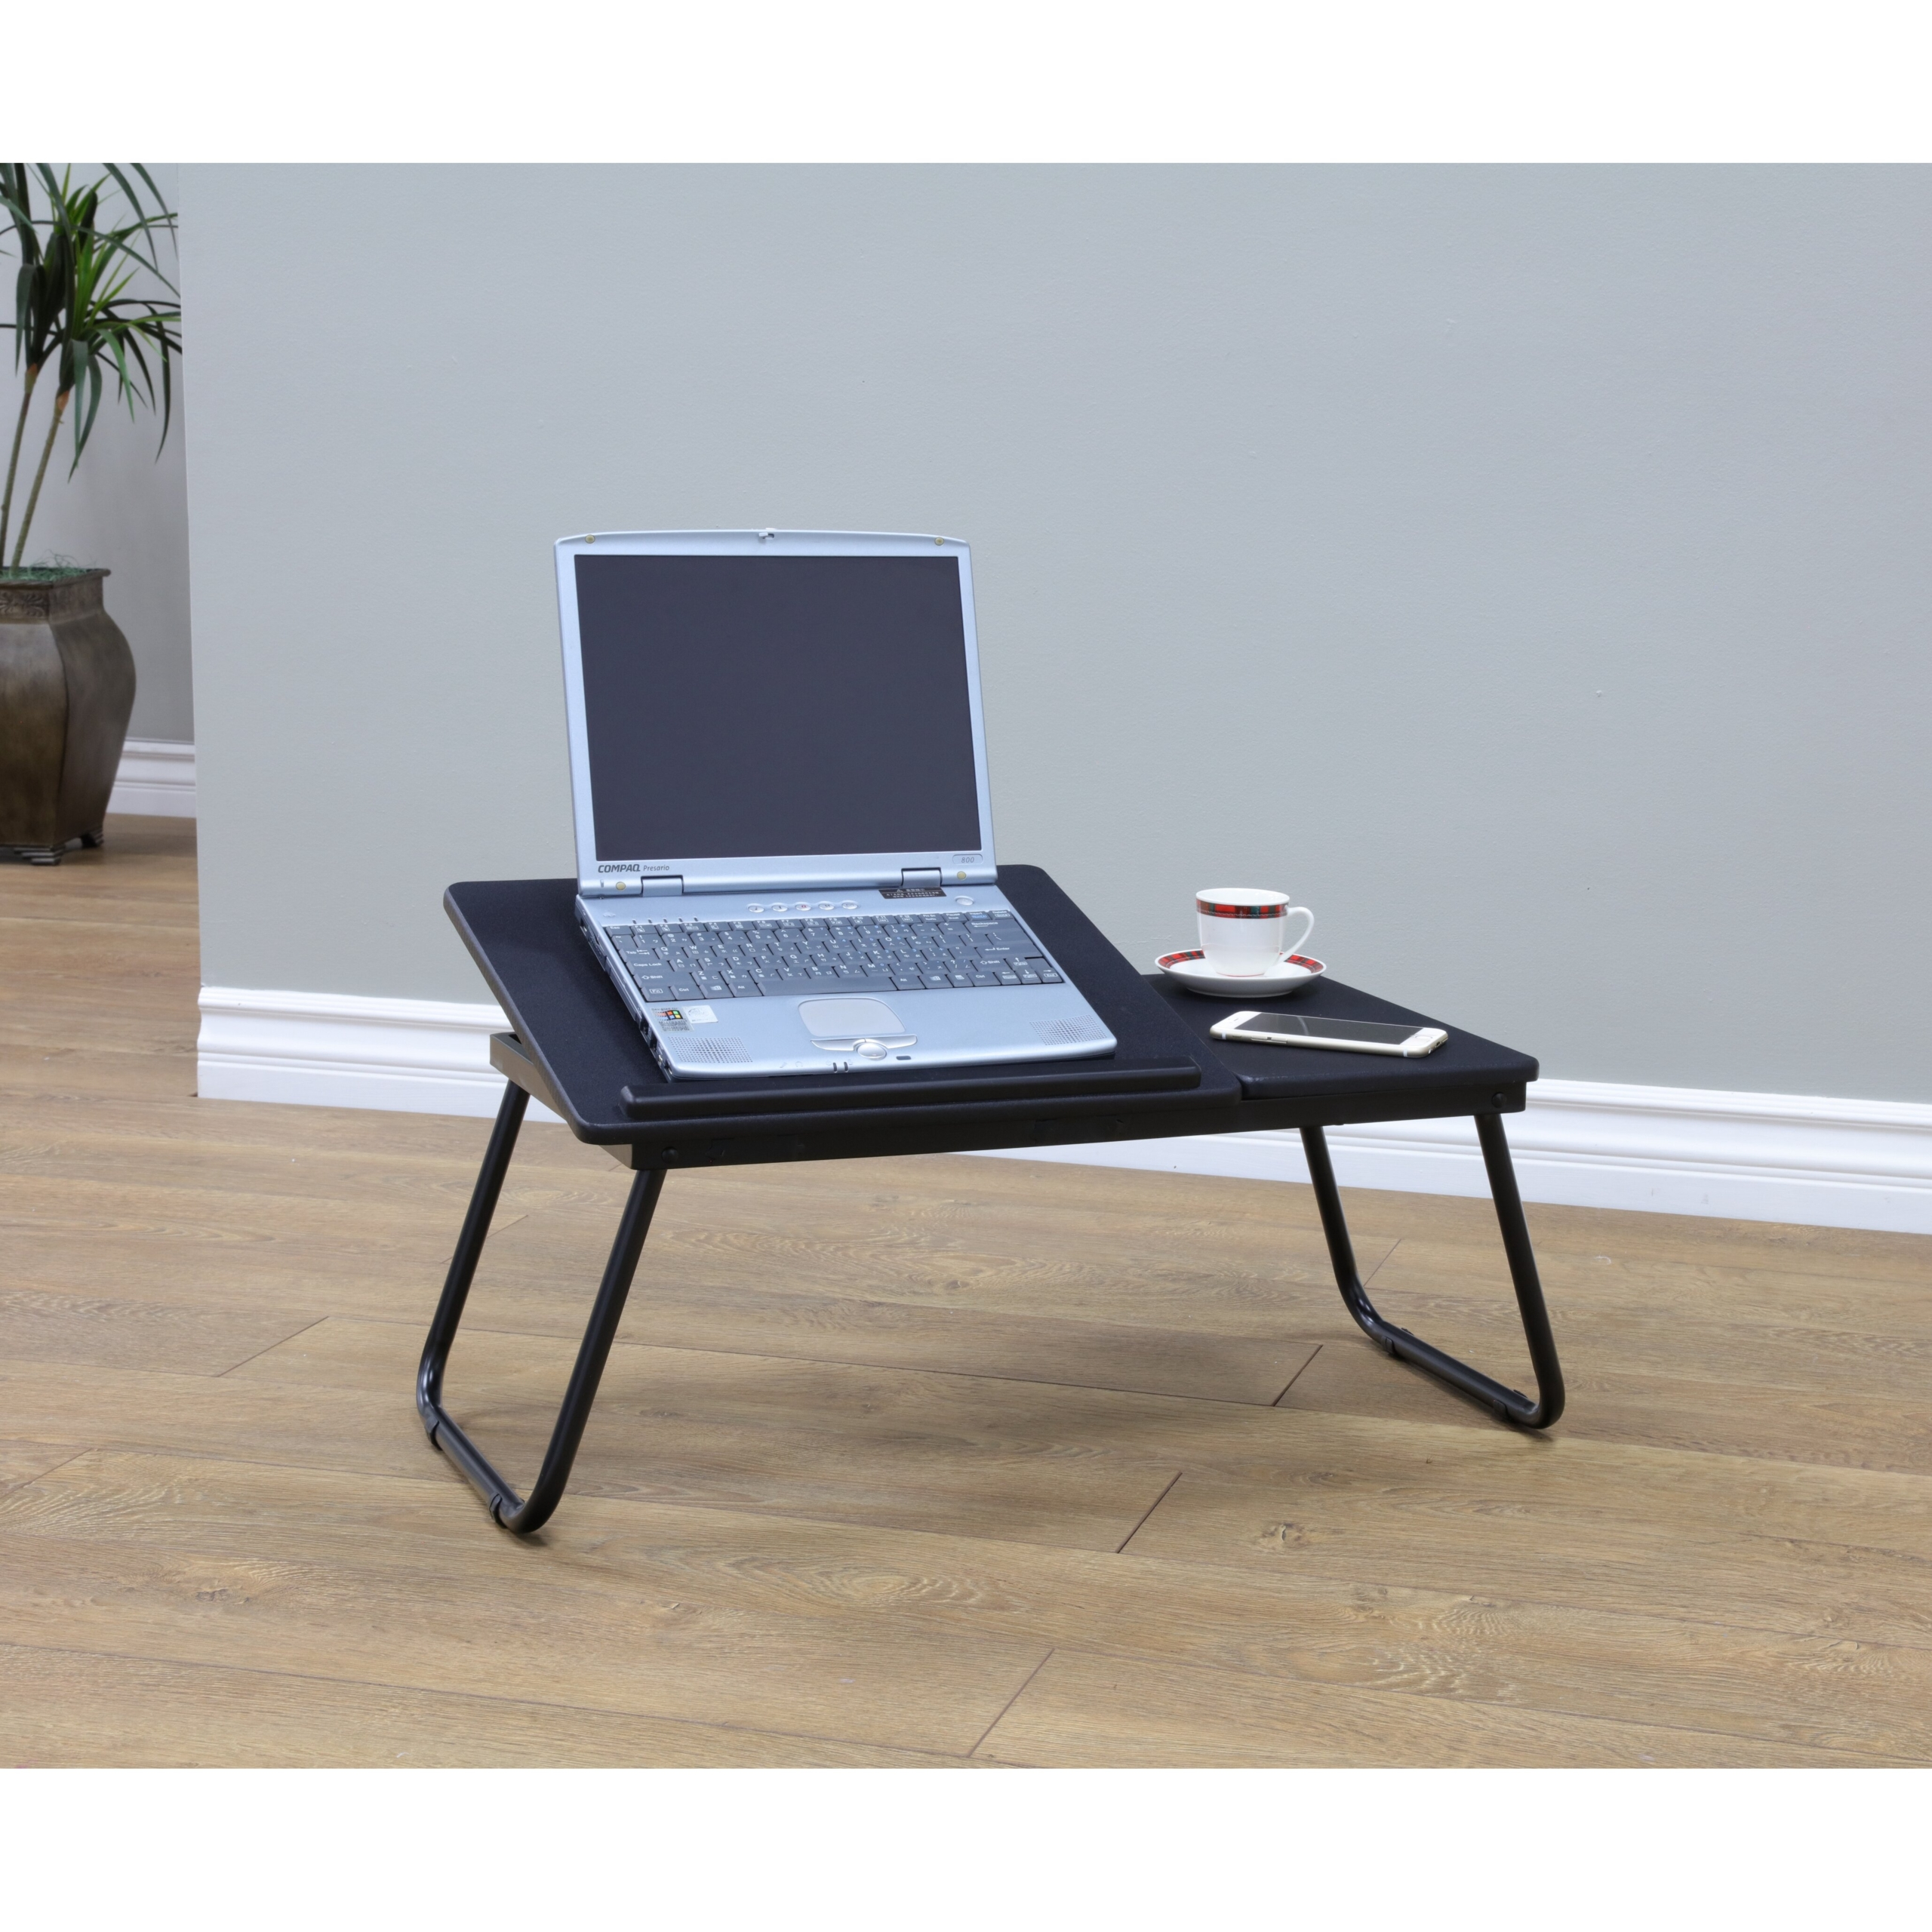 Laptop Tafel Bank : Laptop table for bed visual hunt